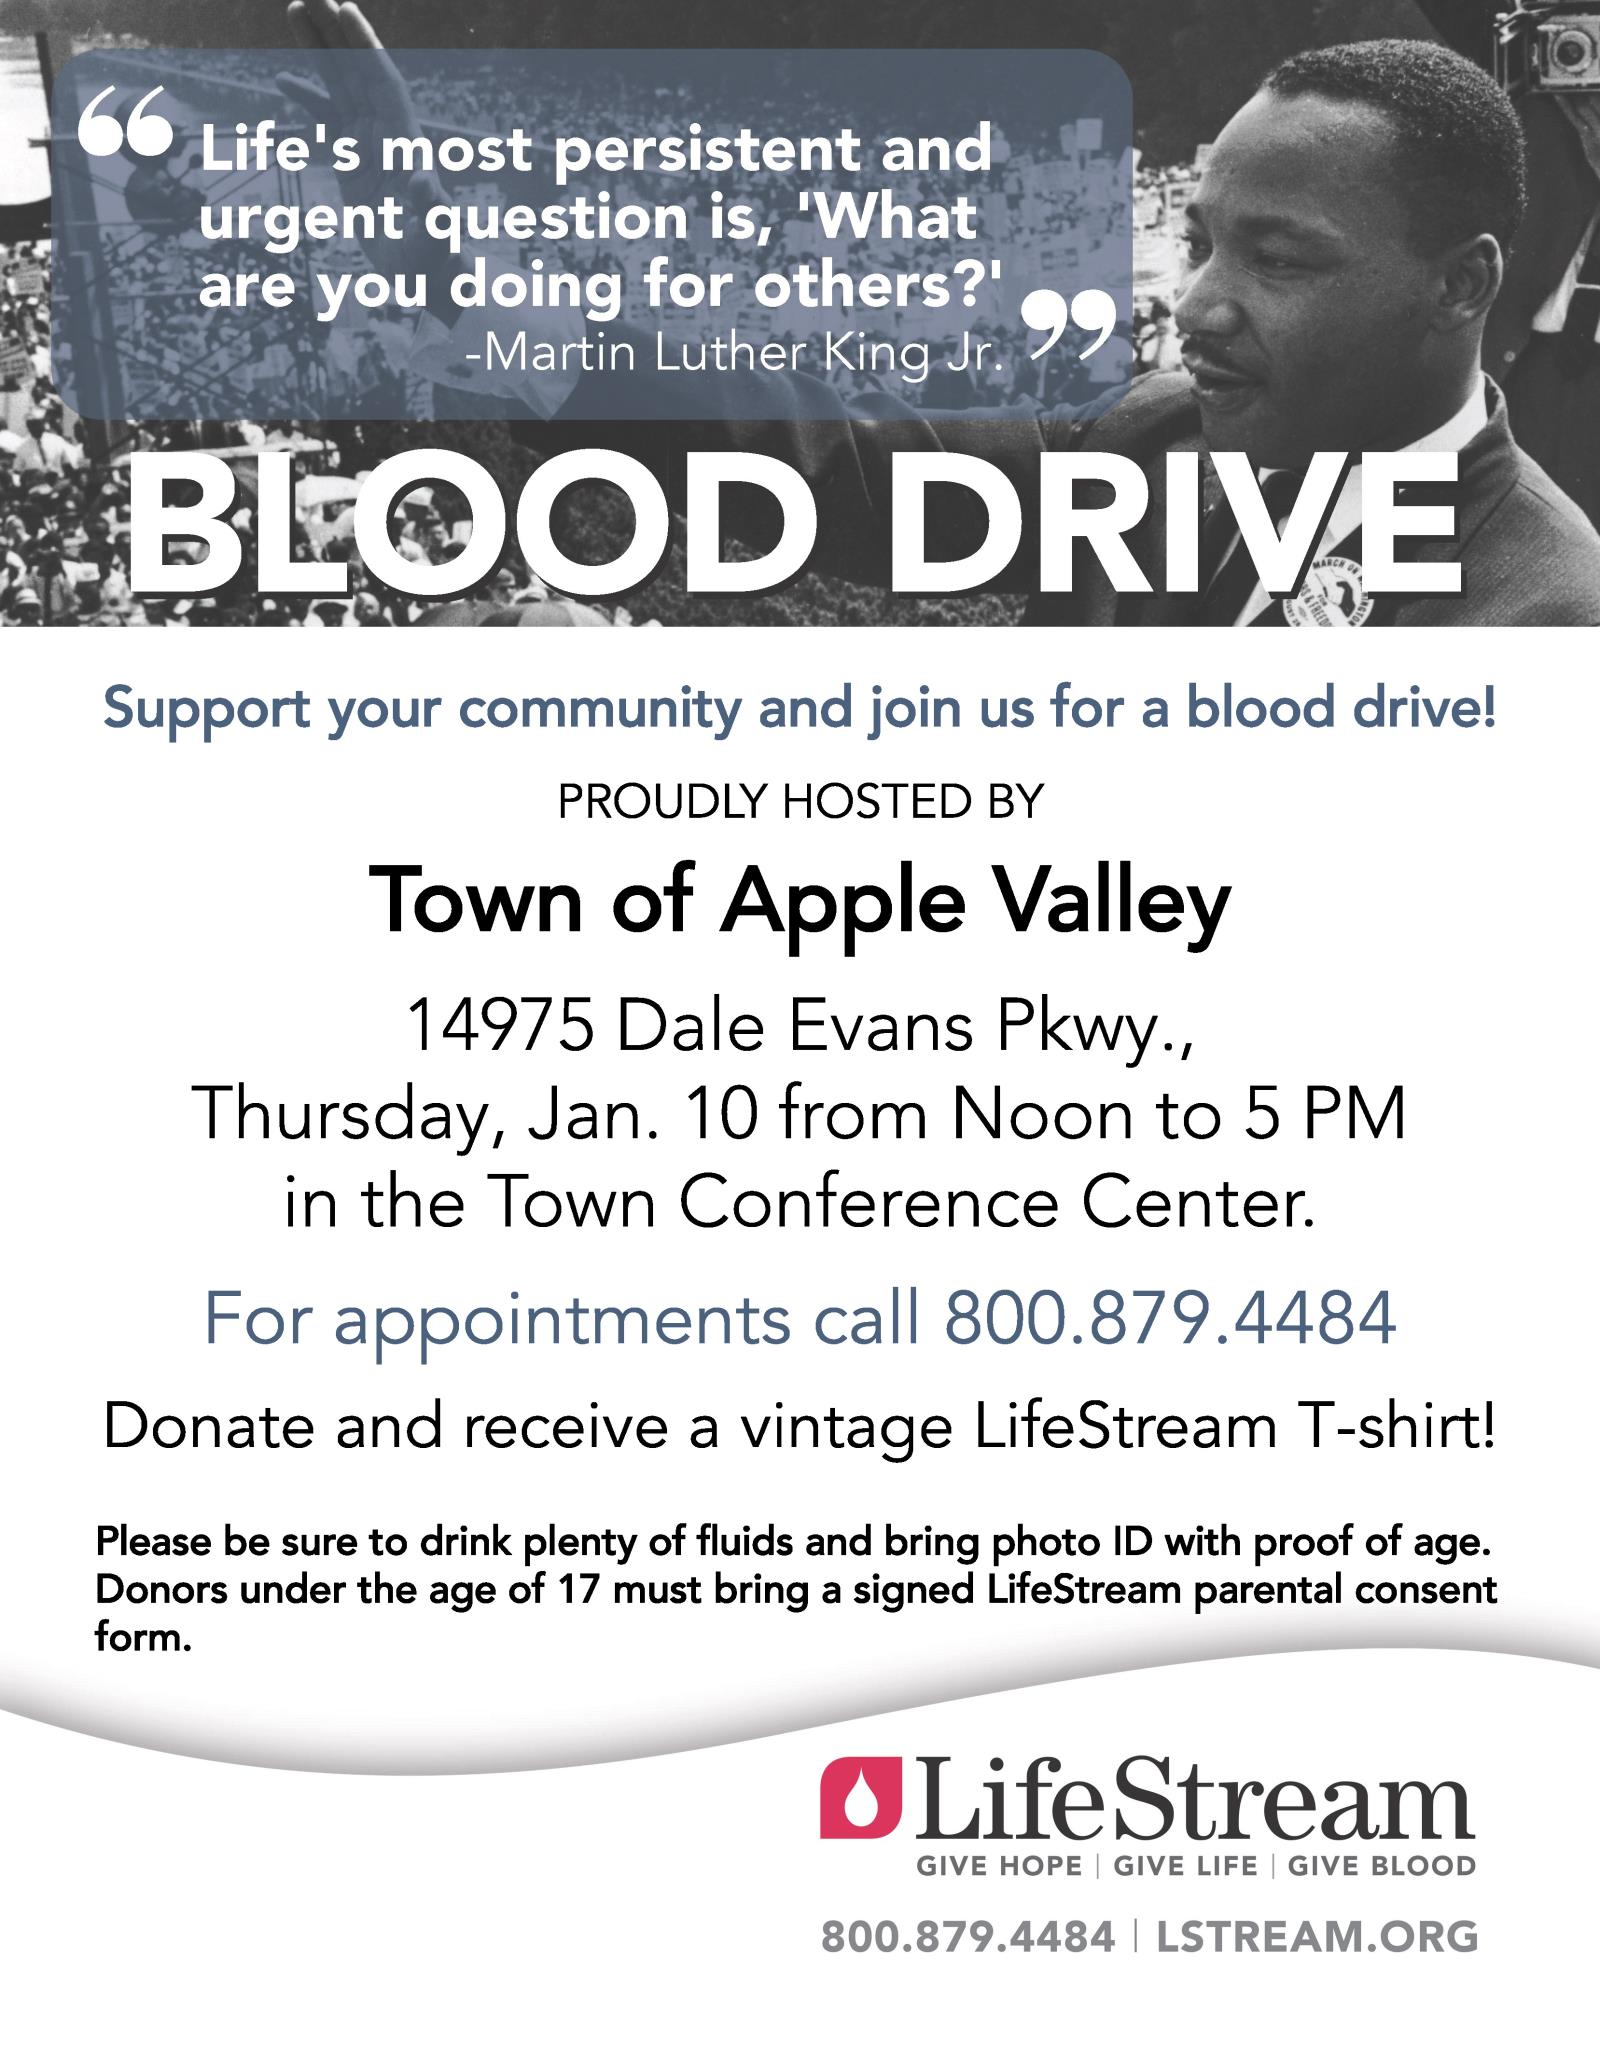 LifeStream blood drive returns to Town Hall